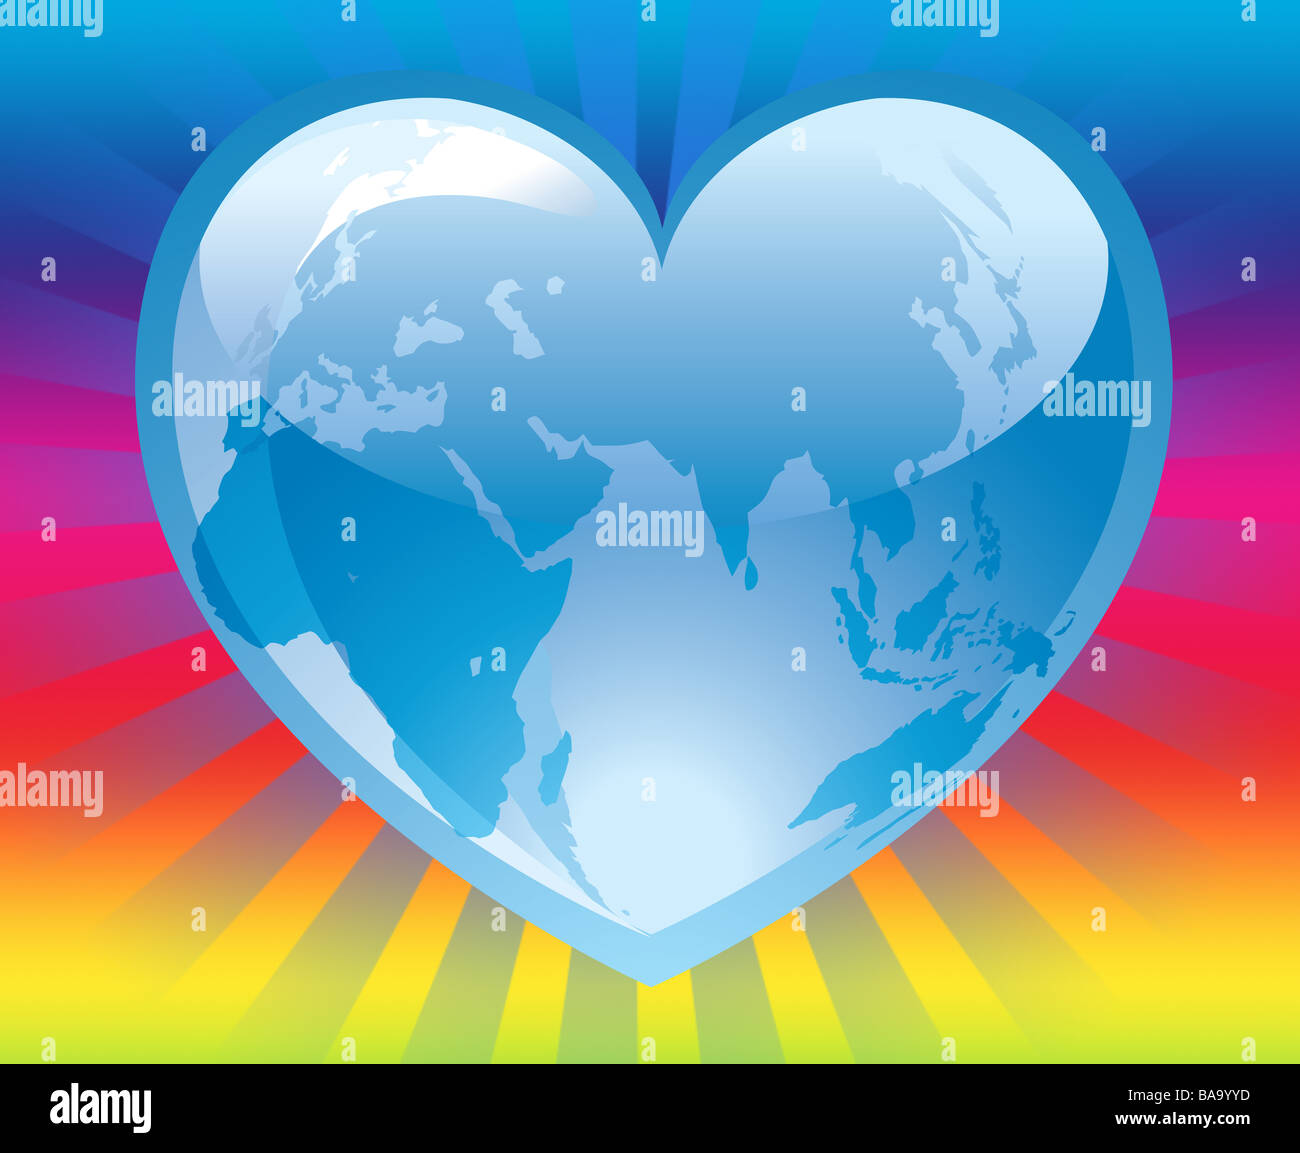 Illustration of the world map inside a blue cool heart on colorful illustration of the world map inside a blue cool heart on colorful light rays background gumiabroncs Image collections